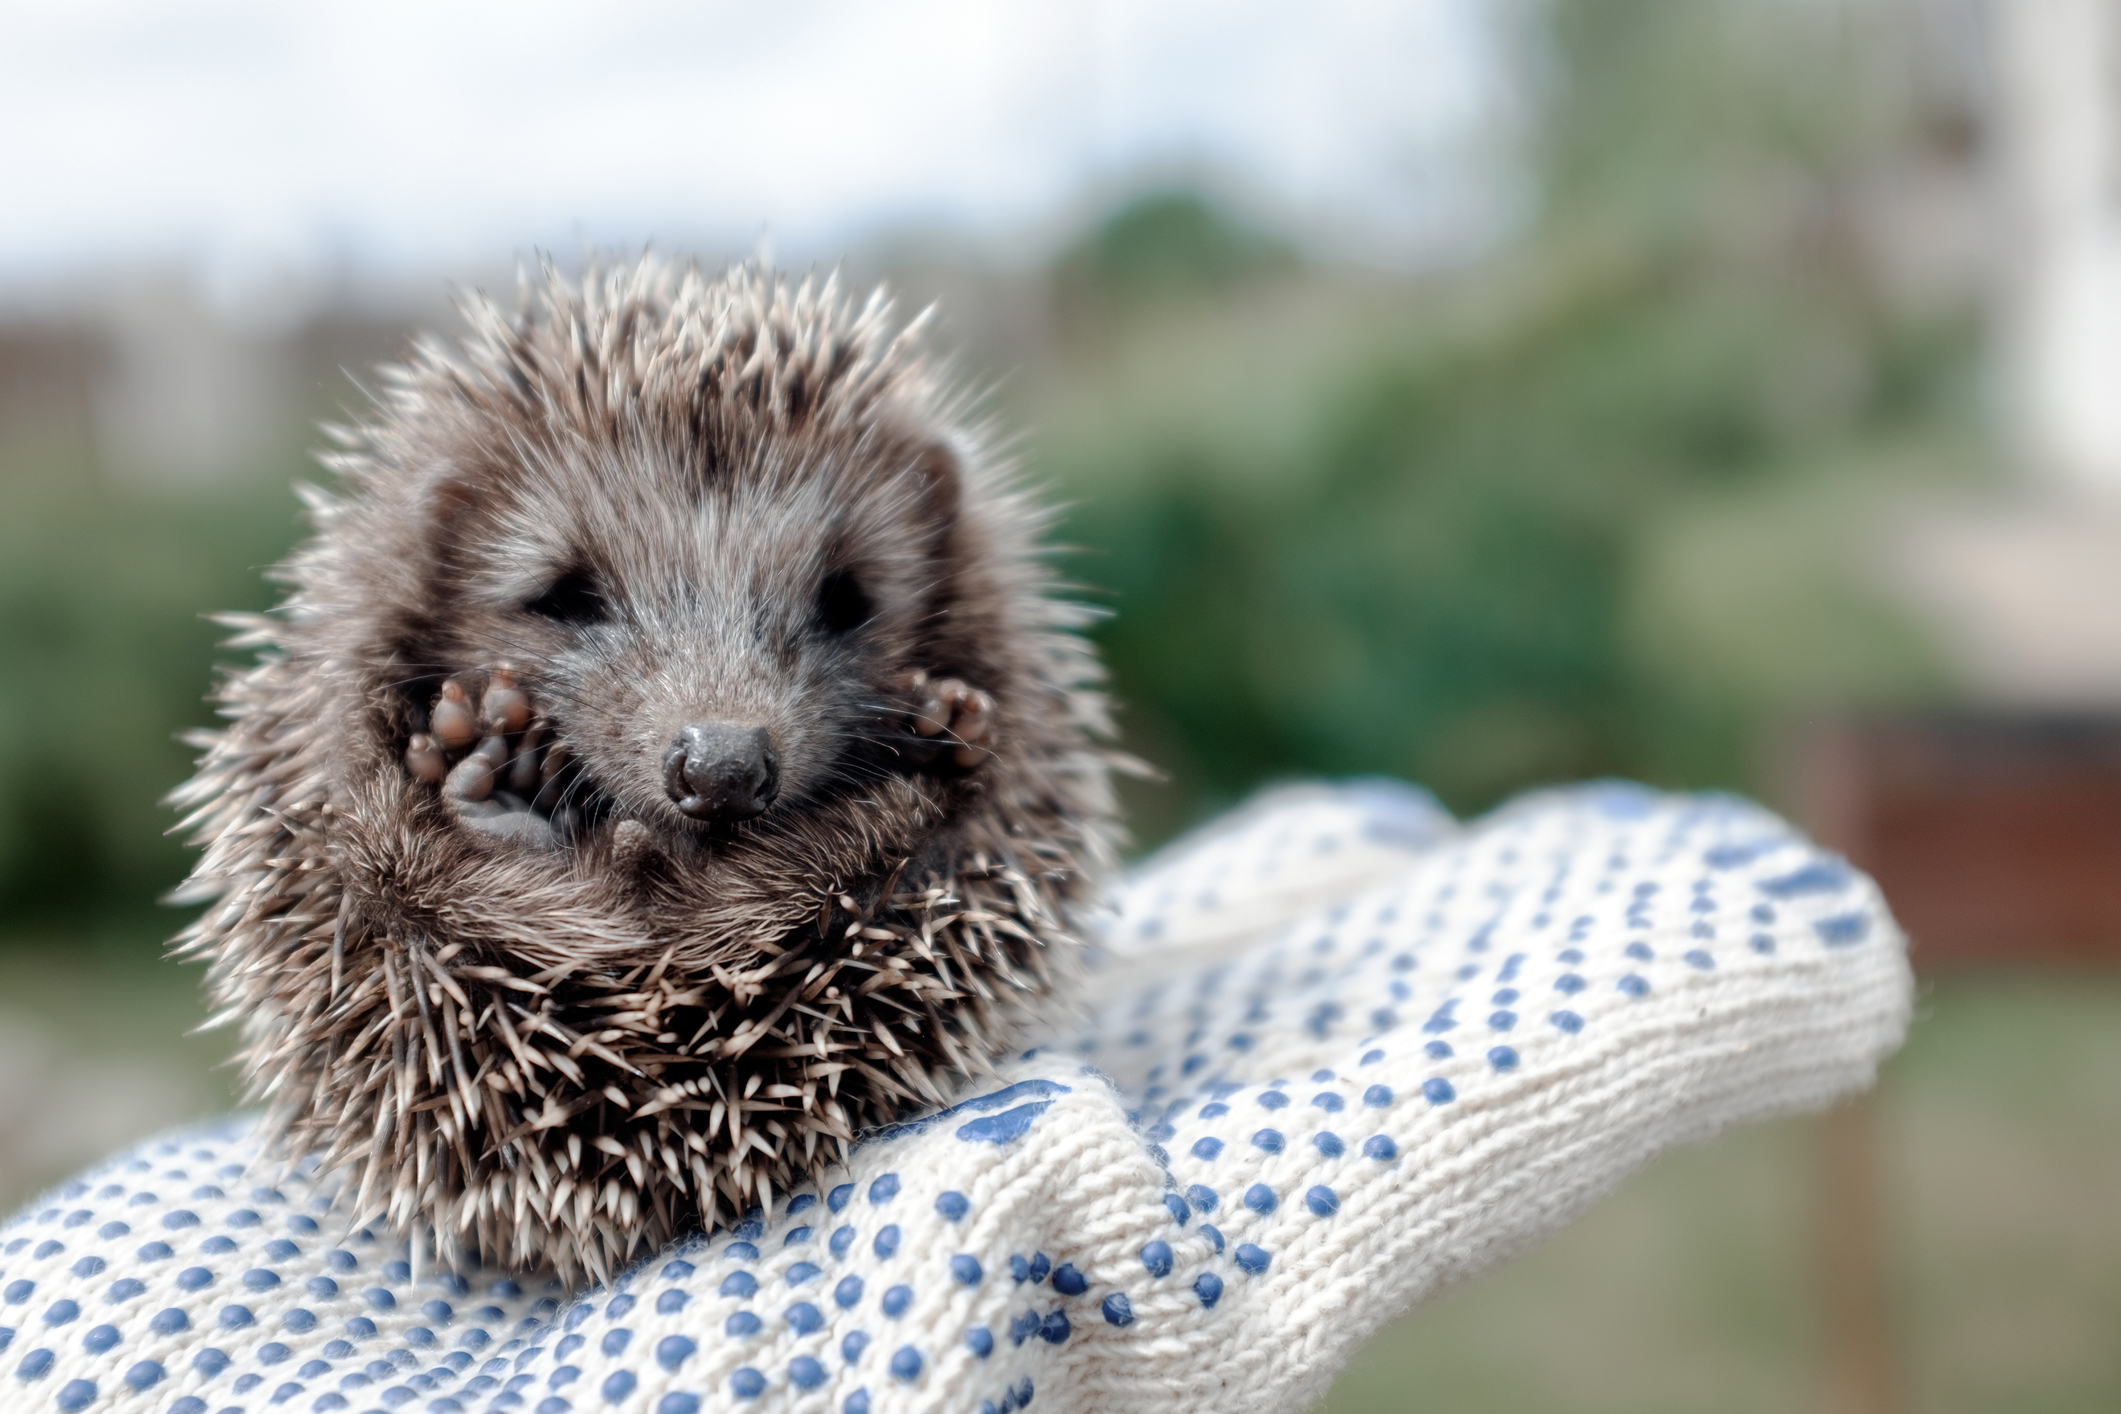 Hedgehogs are at tremendous risk of traps